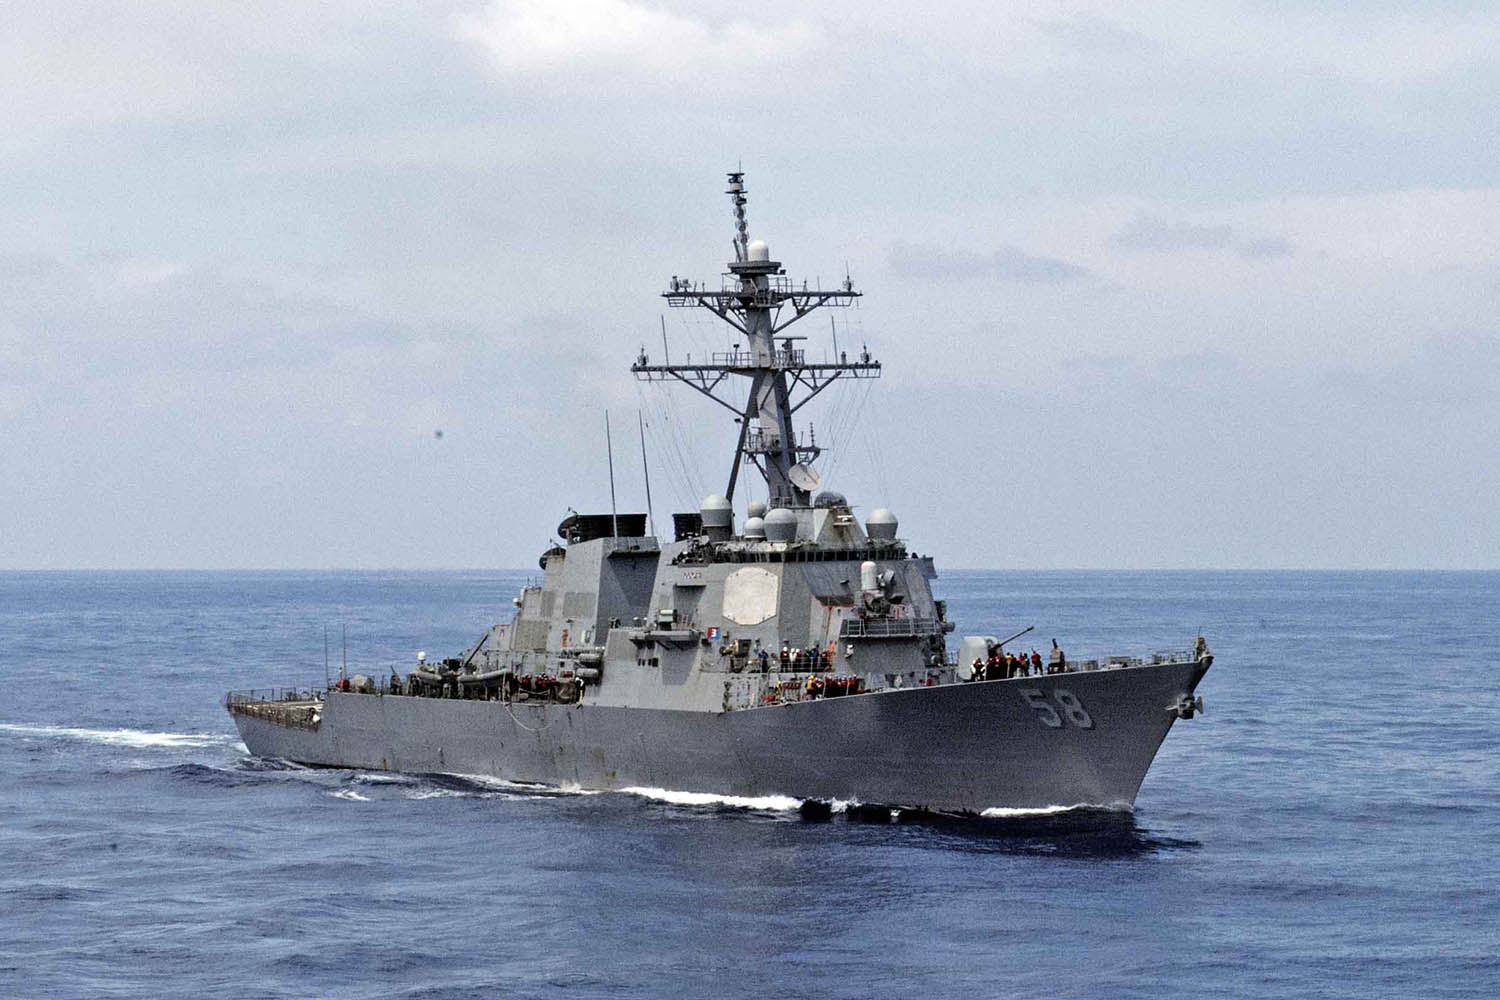 USS Laboon, Other NATO Destroyers Move Towards The Black Sea